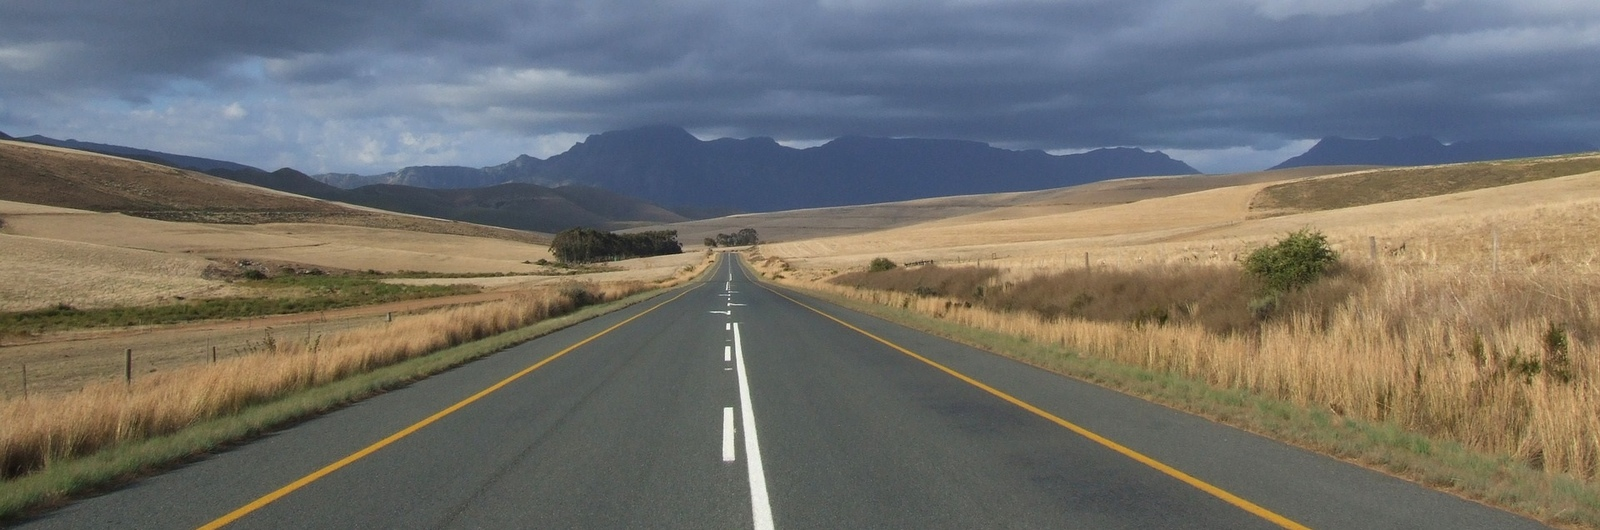 city header southafrica road mountains